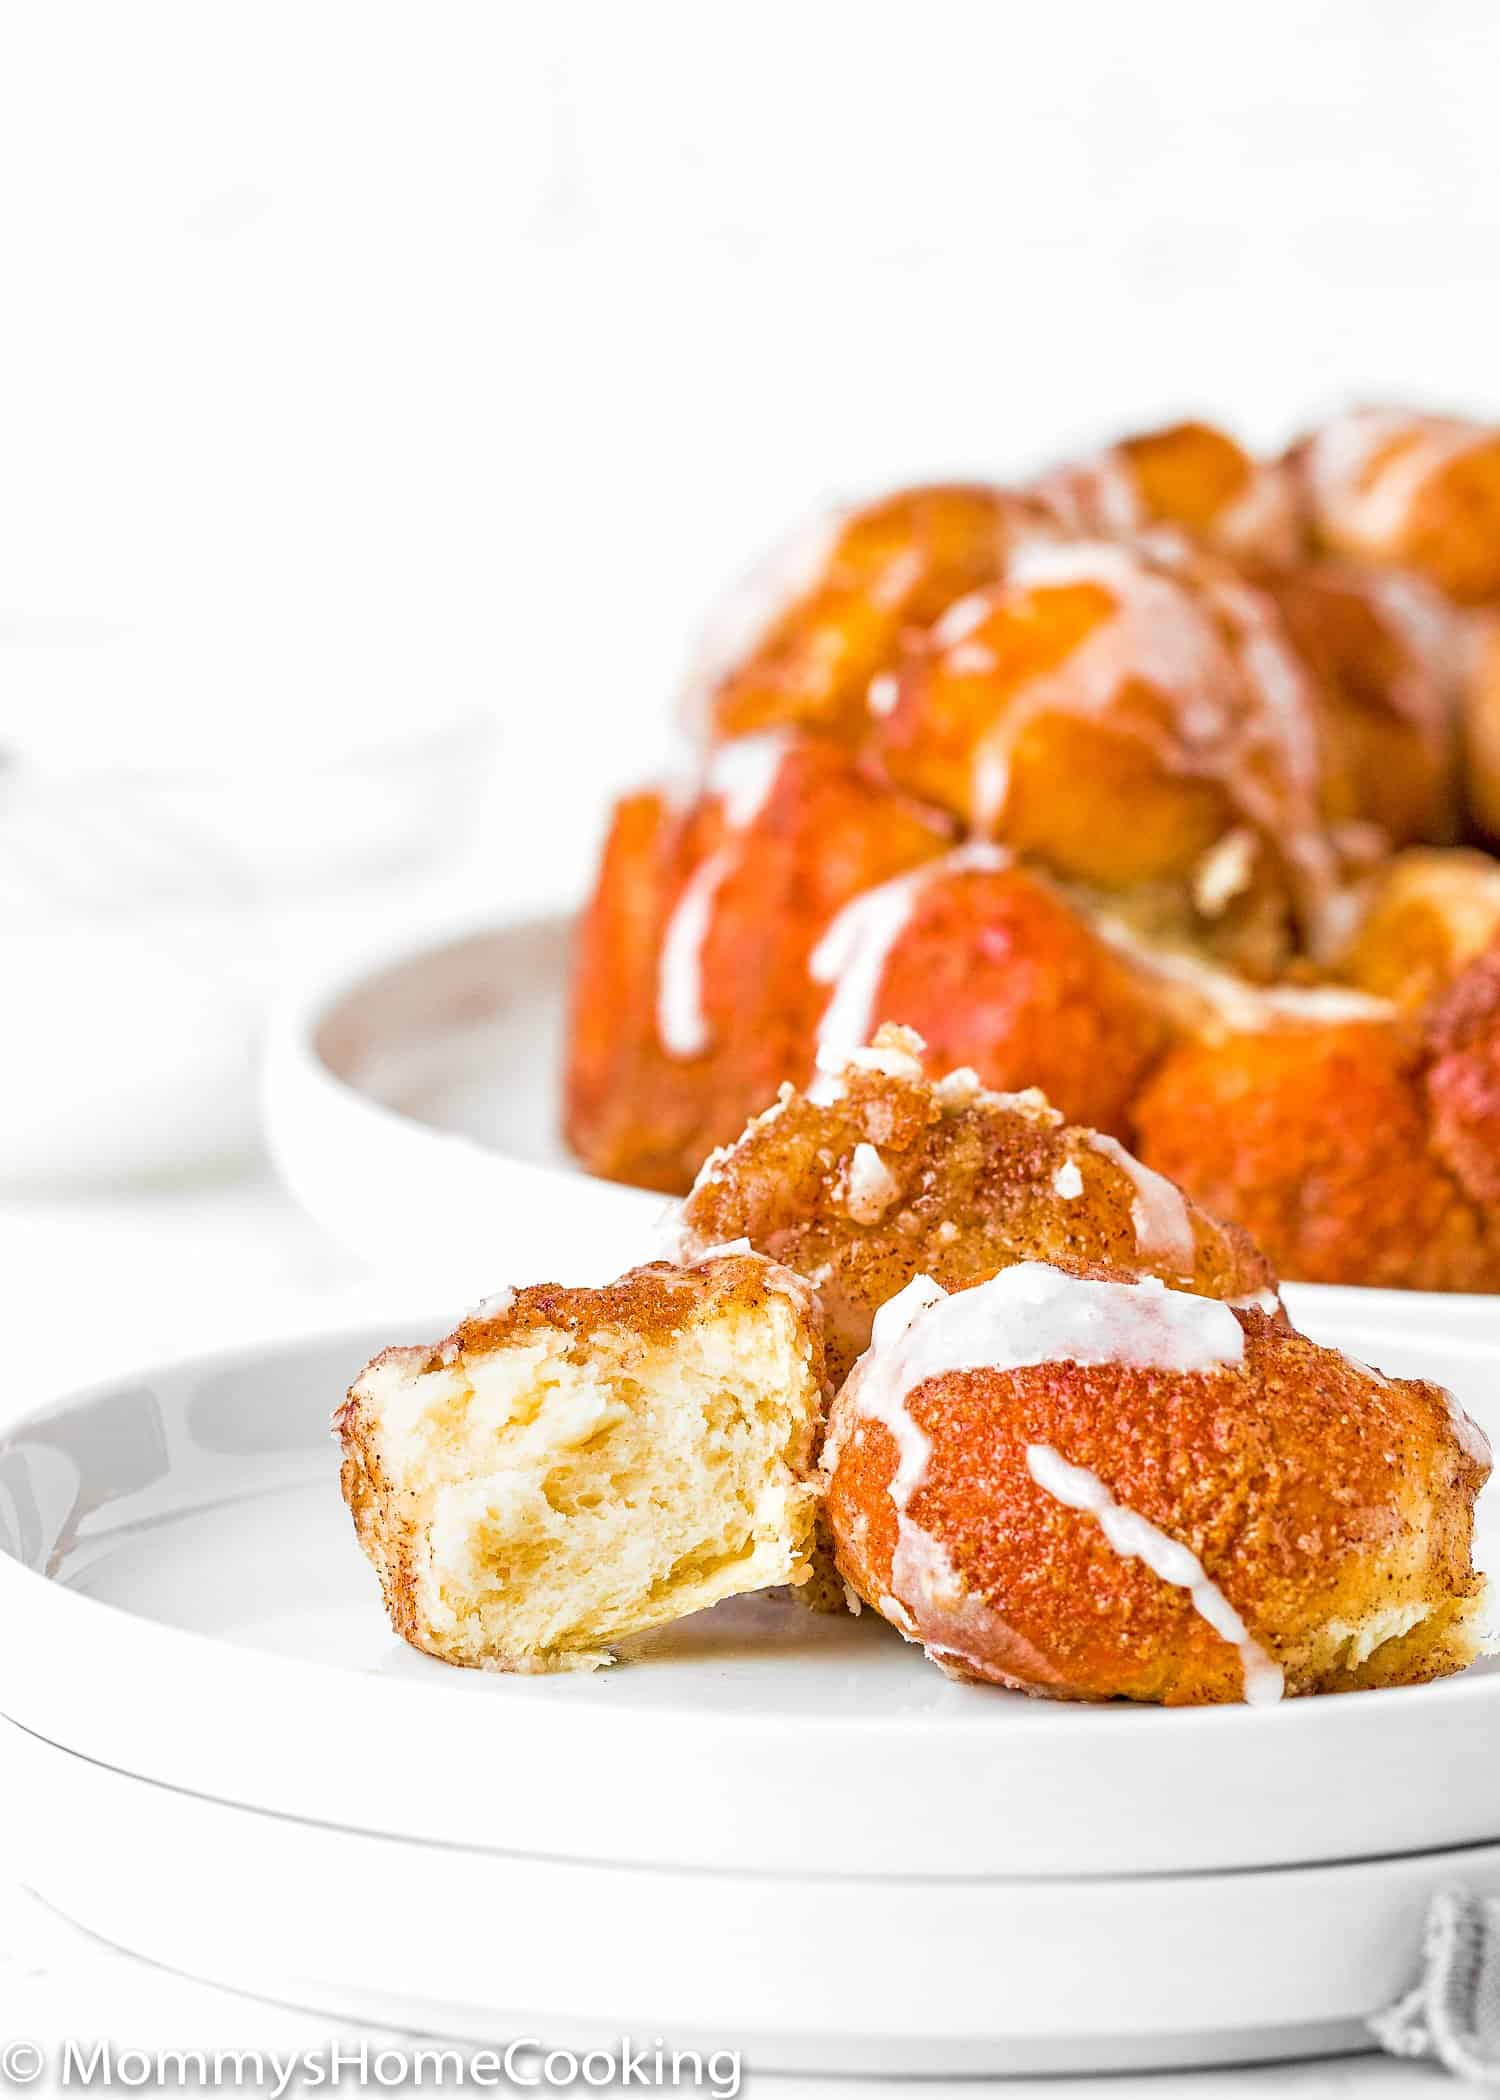 Homemade Eggless Monkey Bread pieces showing the fluffy inside texture